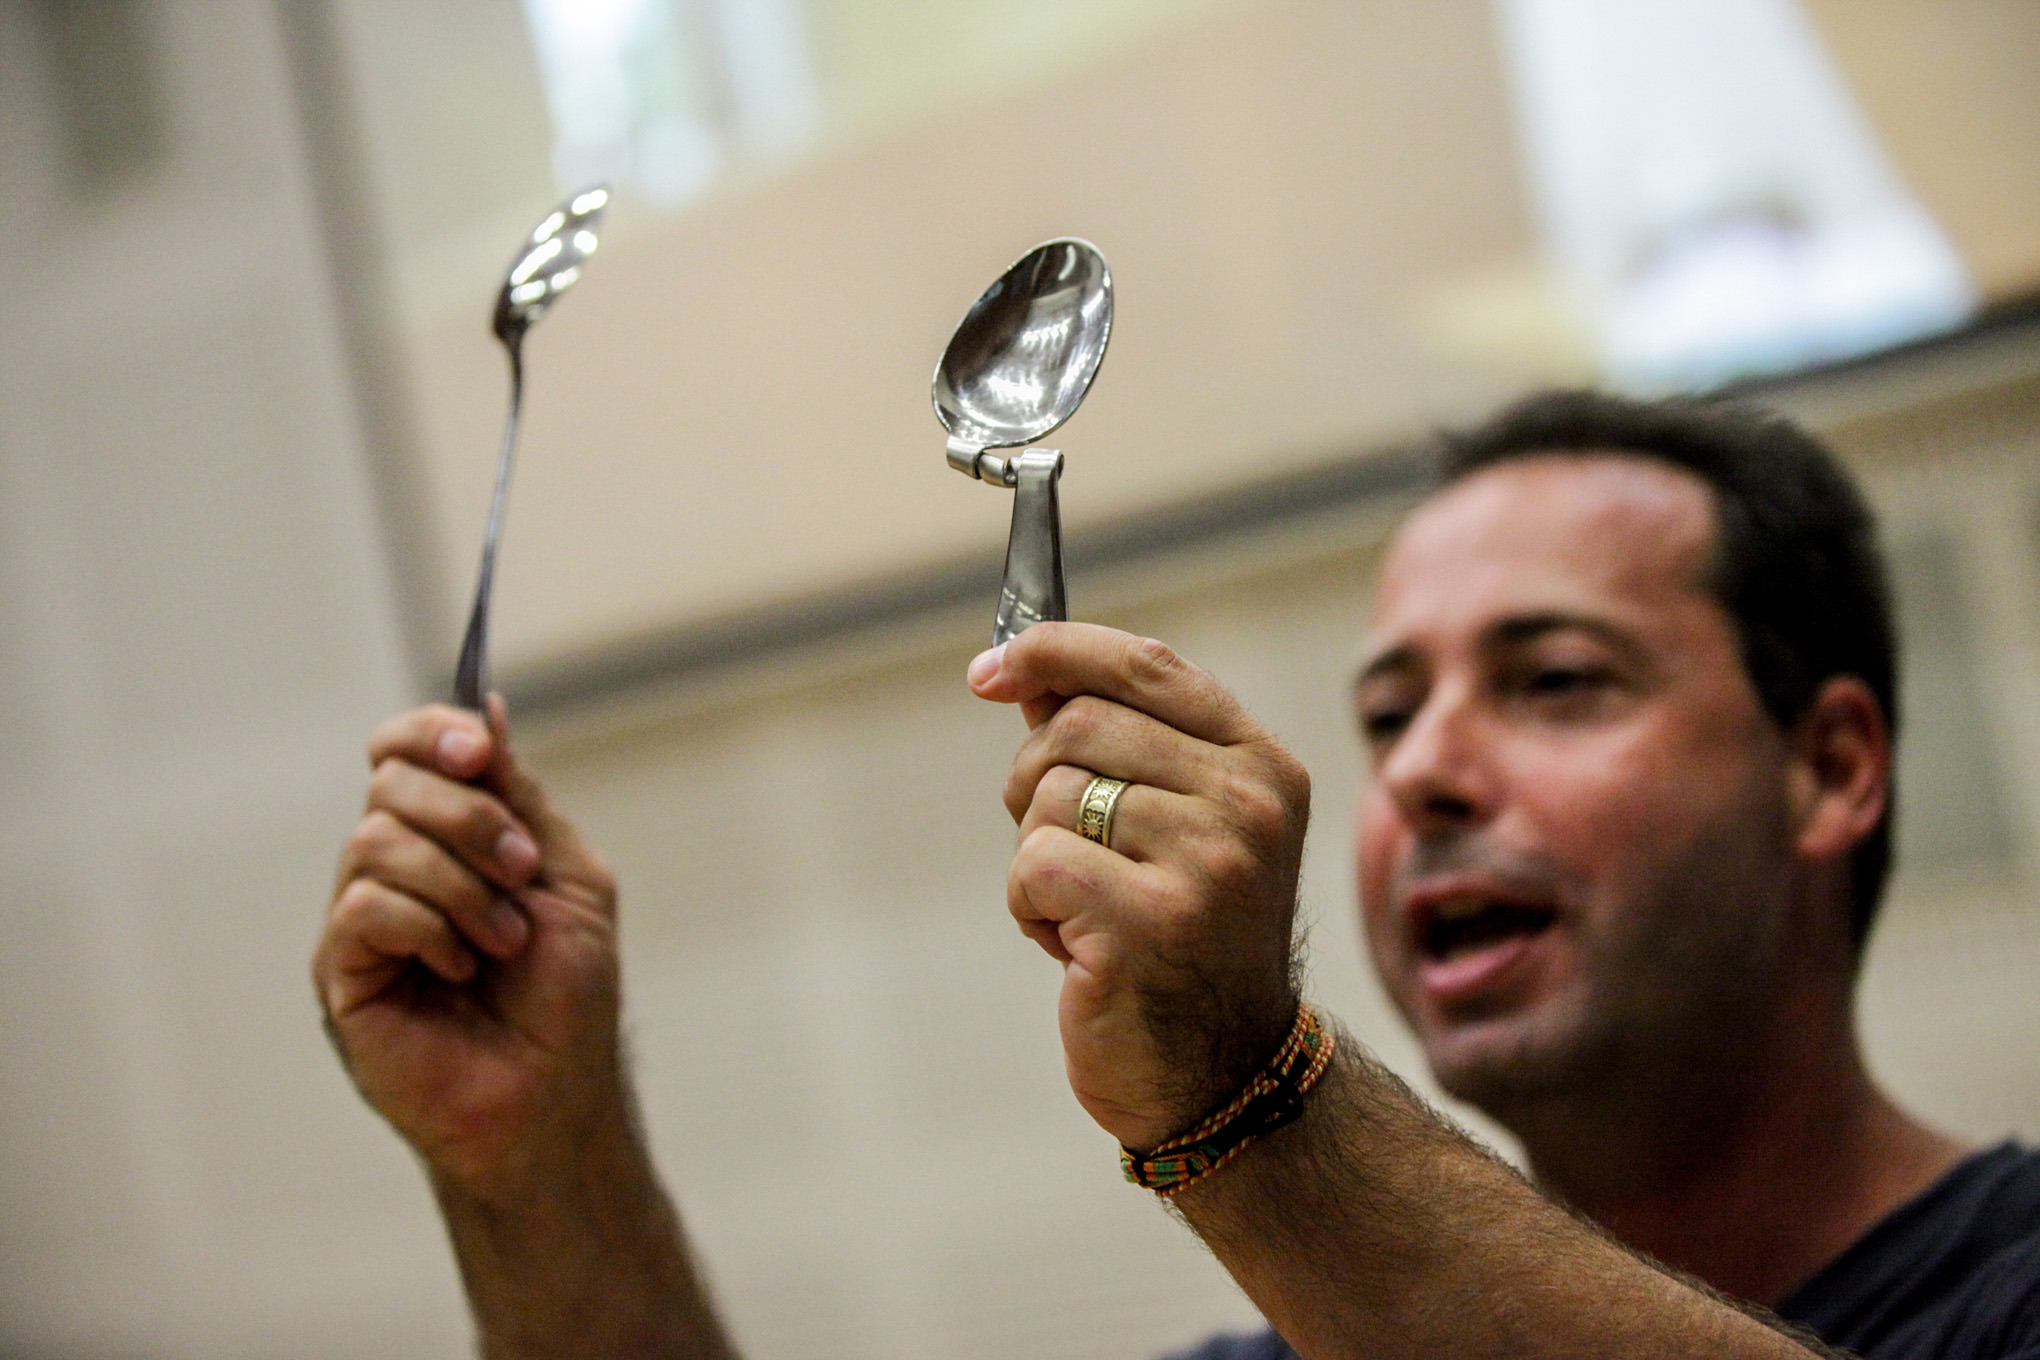 spoon-bending paradigm shifting exercise